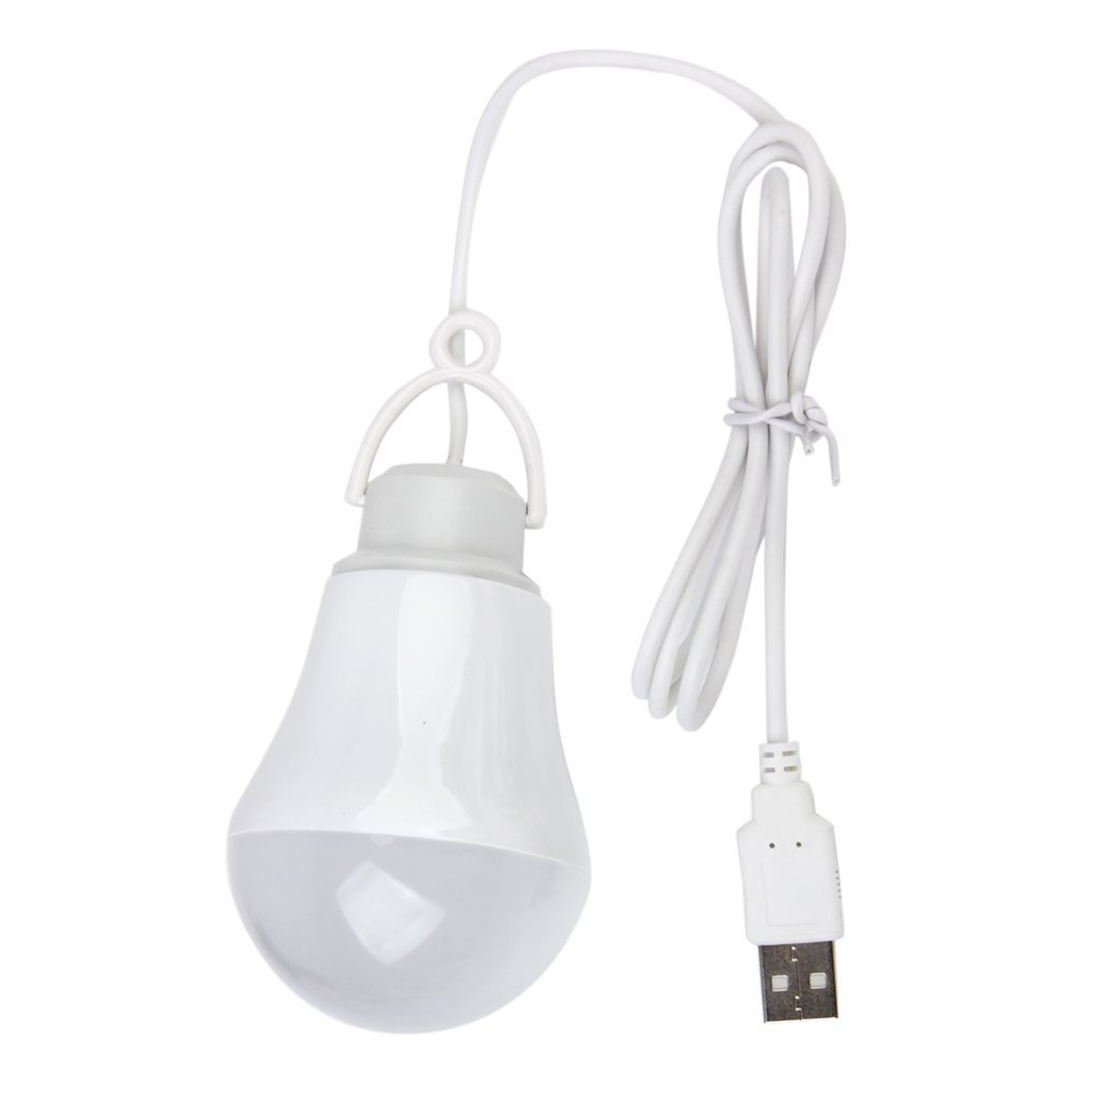 DC5V 5W LED Bulb USB lamp Portable White light for Outdoor Laptop (White) купить